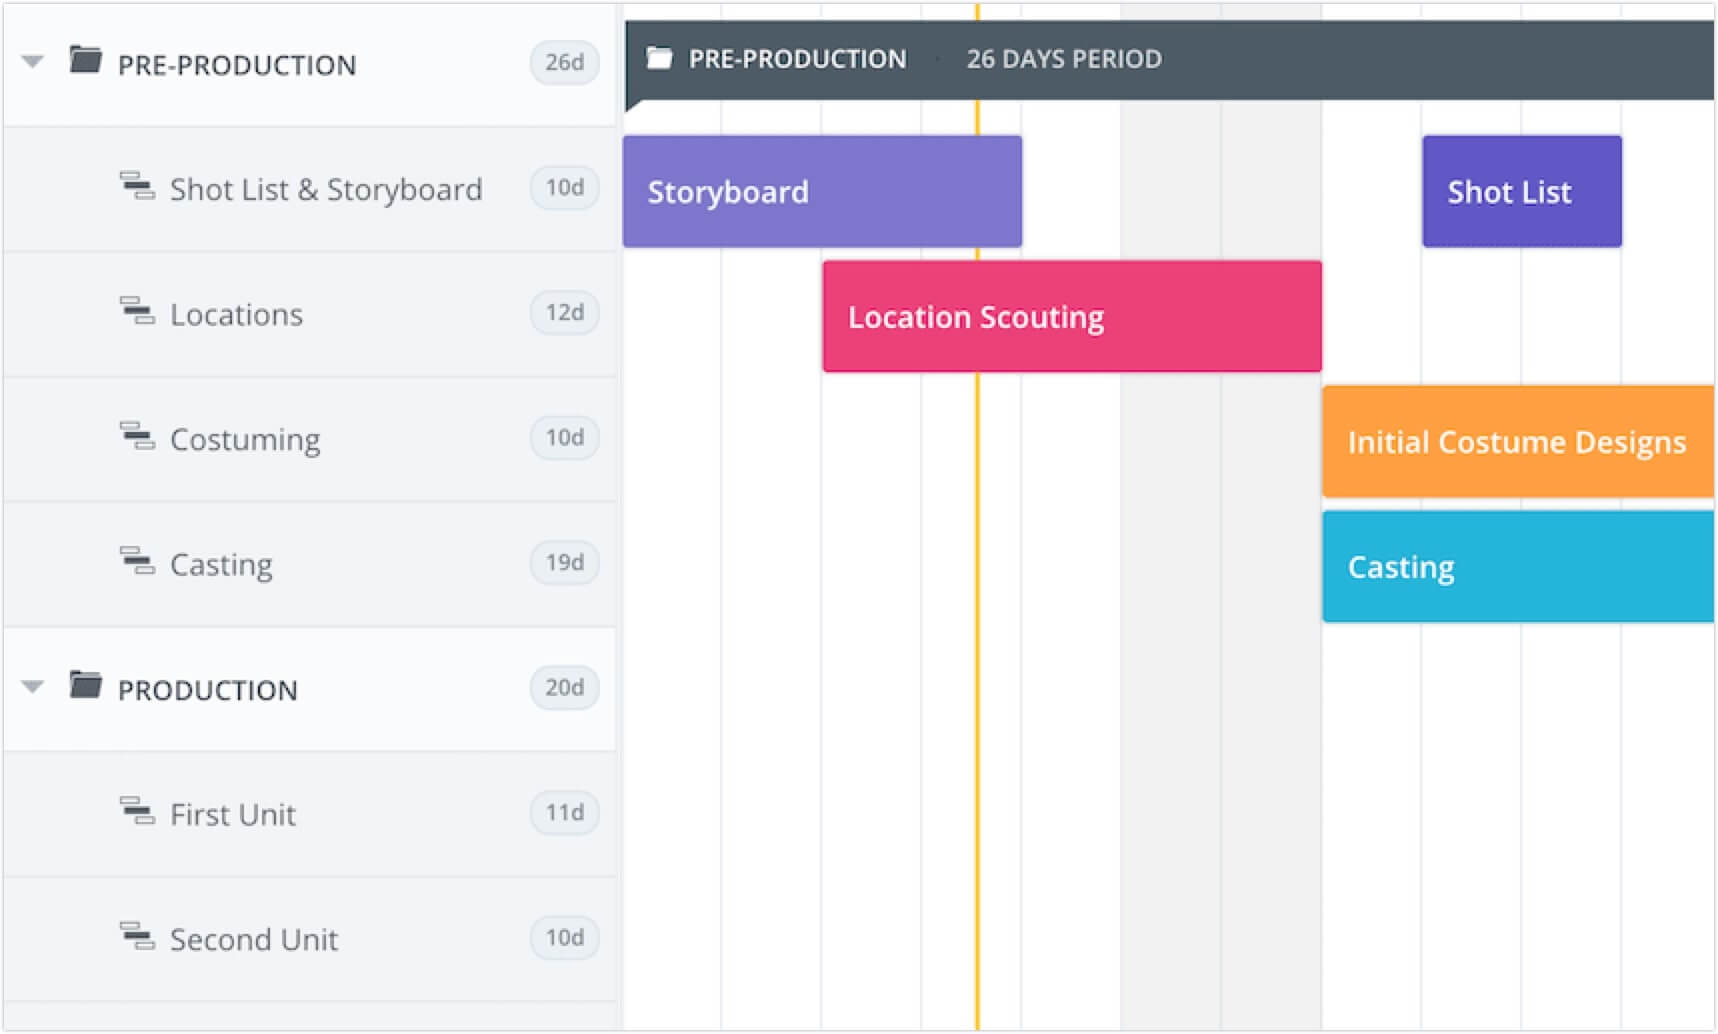 Photo, Video and Film Production Calendar Template and Software - - Pre-Production Period Scheduling